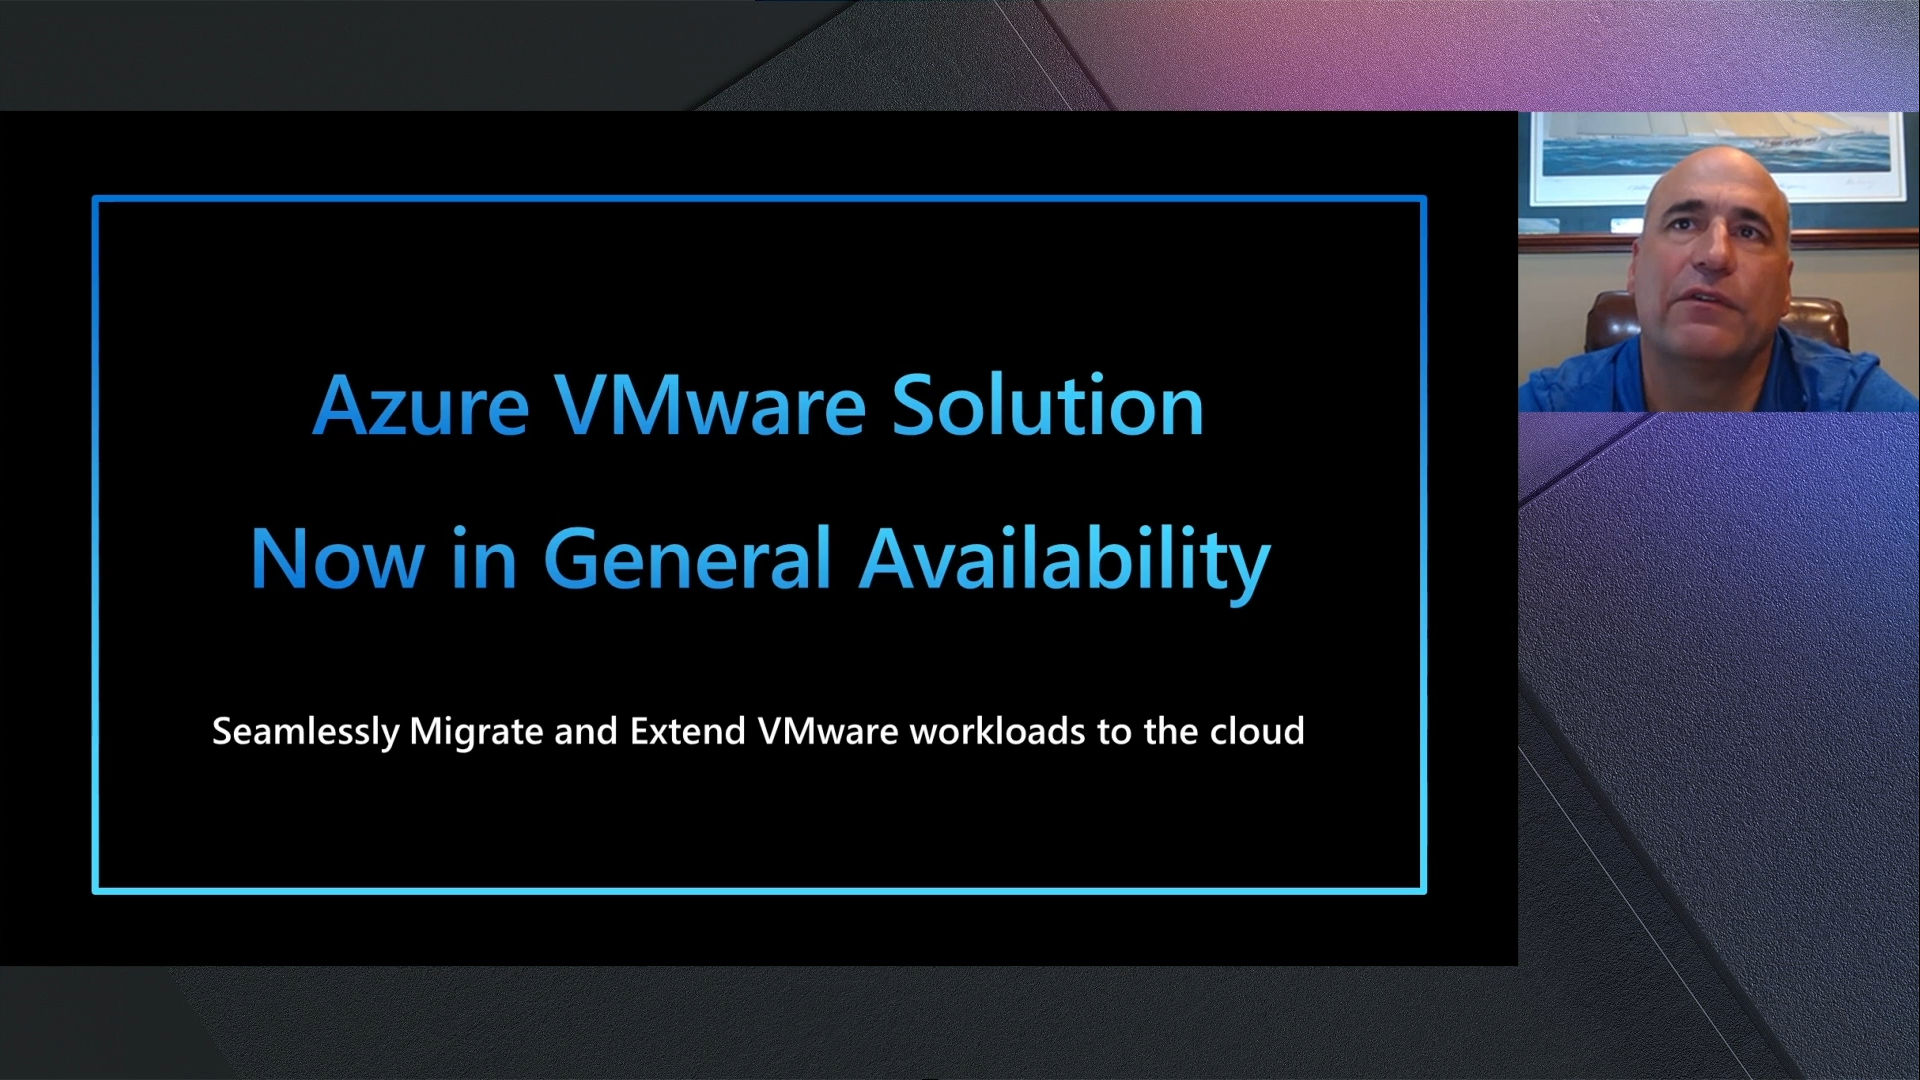 Accelerate your cloud journey with Azure VMware Solution